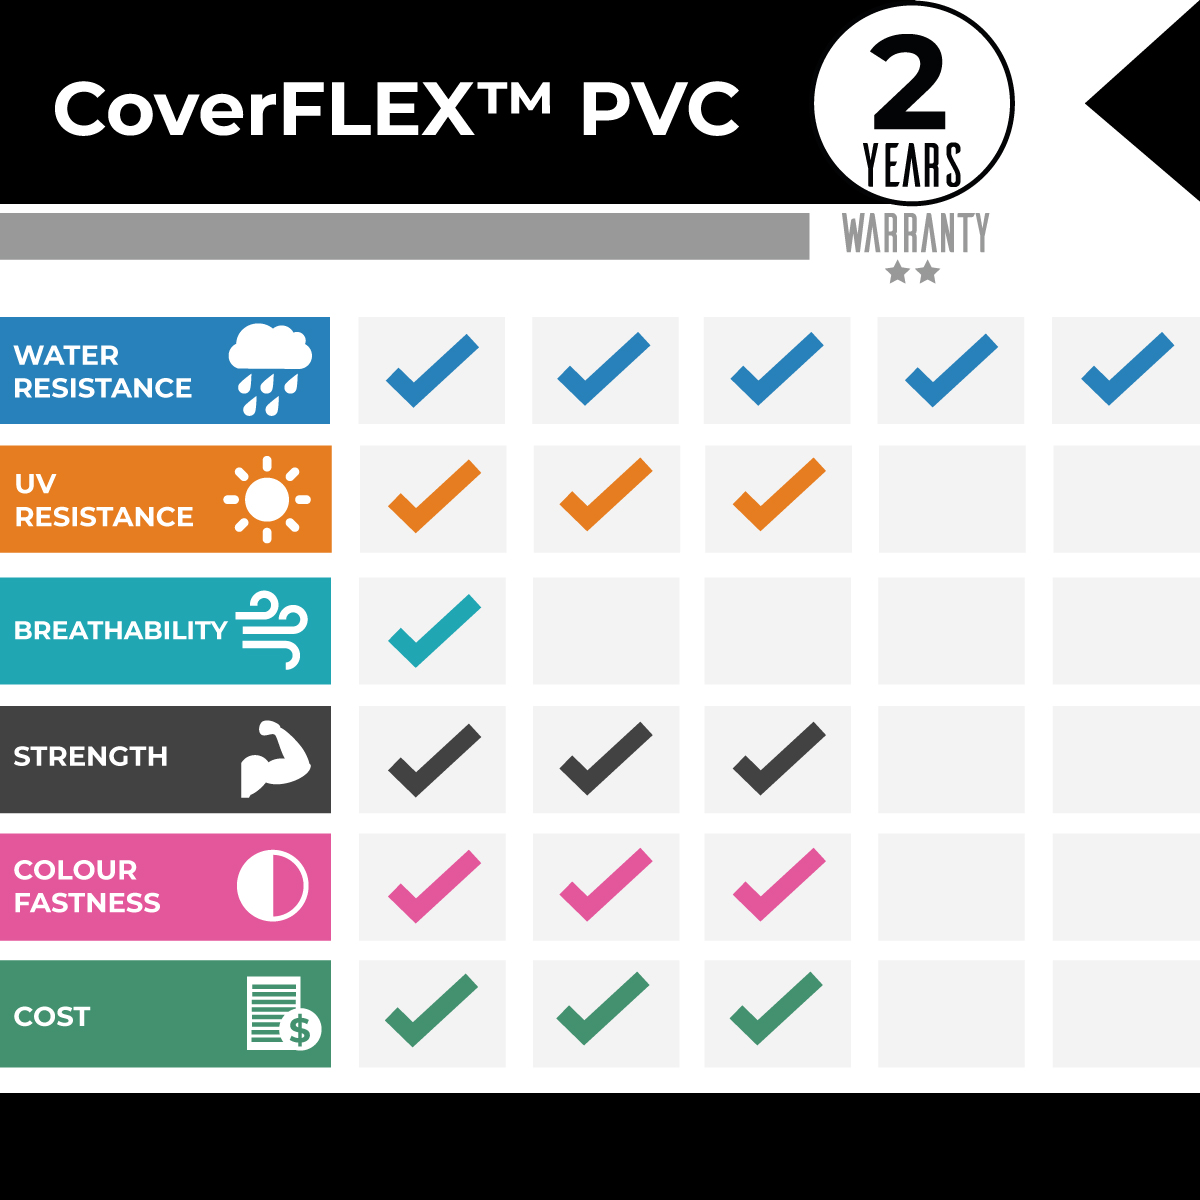 CoverFLEX Smooth PVC Comparison Graph